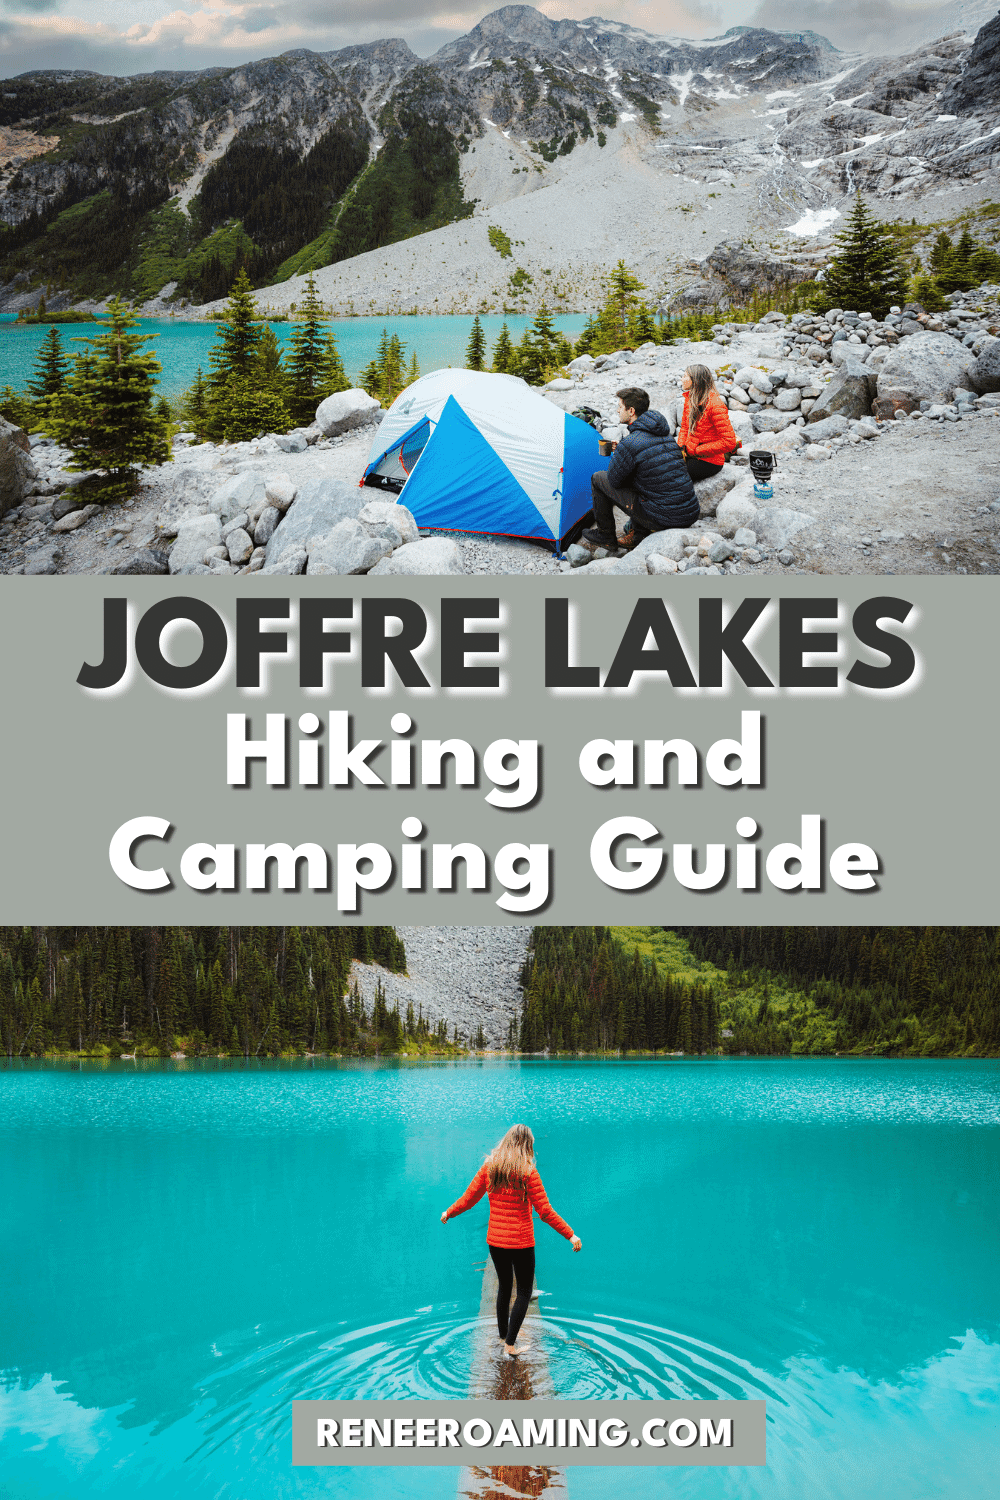 Joffre Lakes Hiking and Camping Guide: Explore Lower, Middle and Upper Joffre Lakes